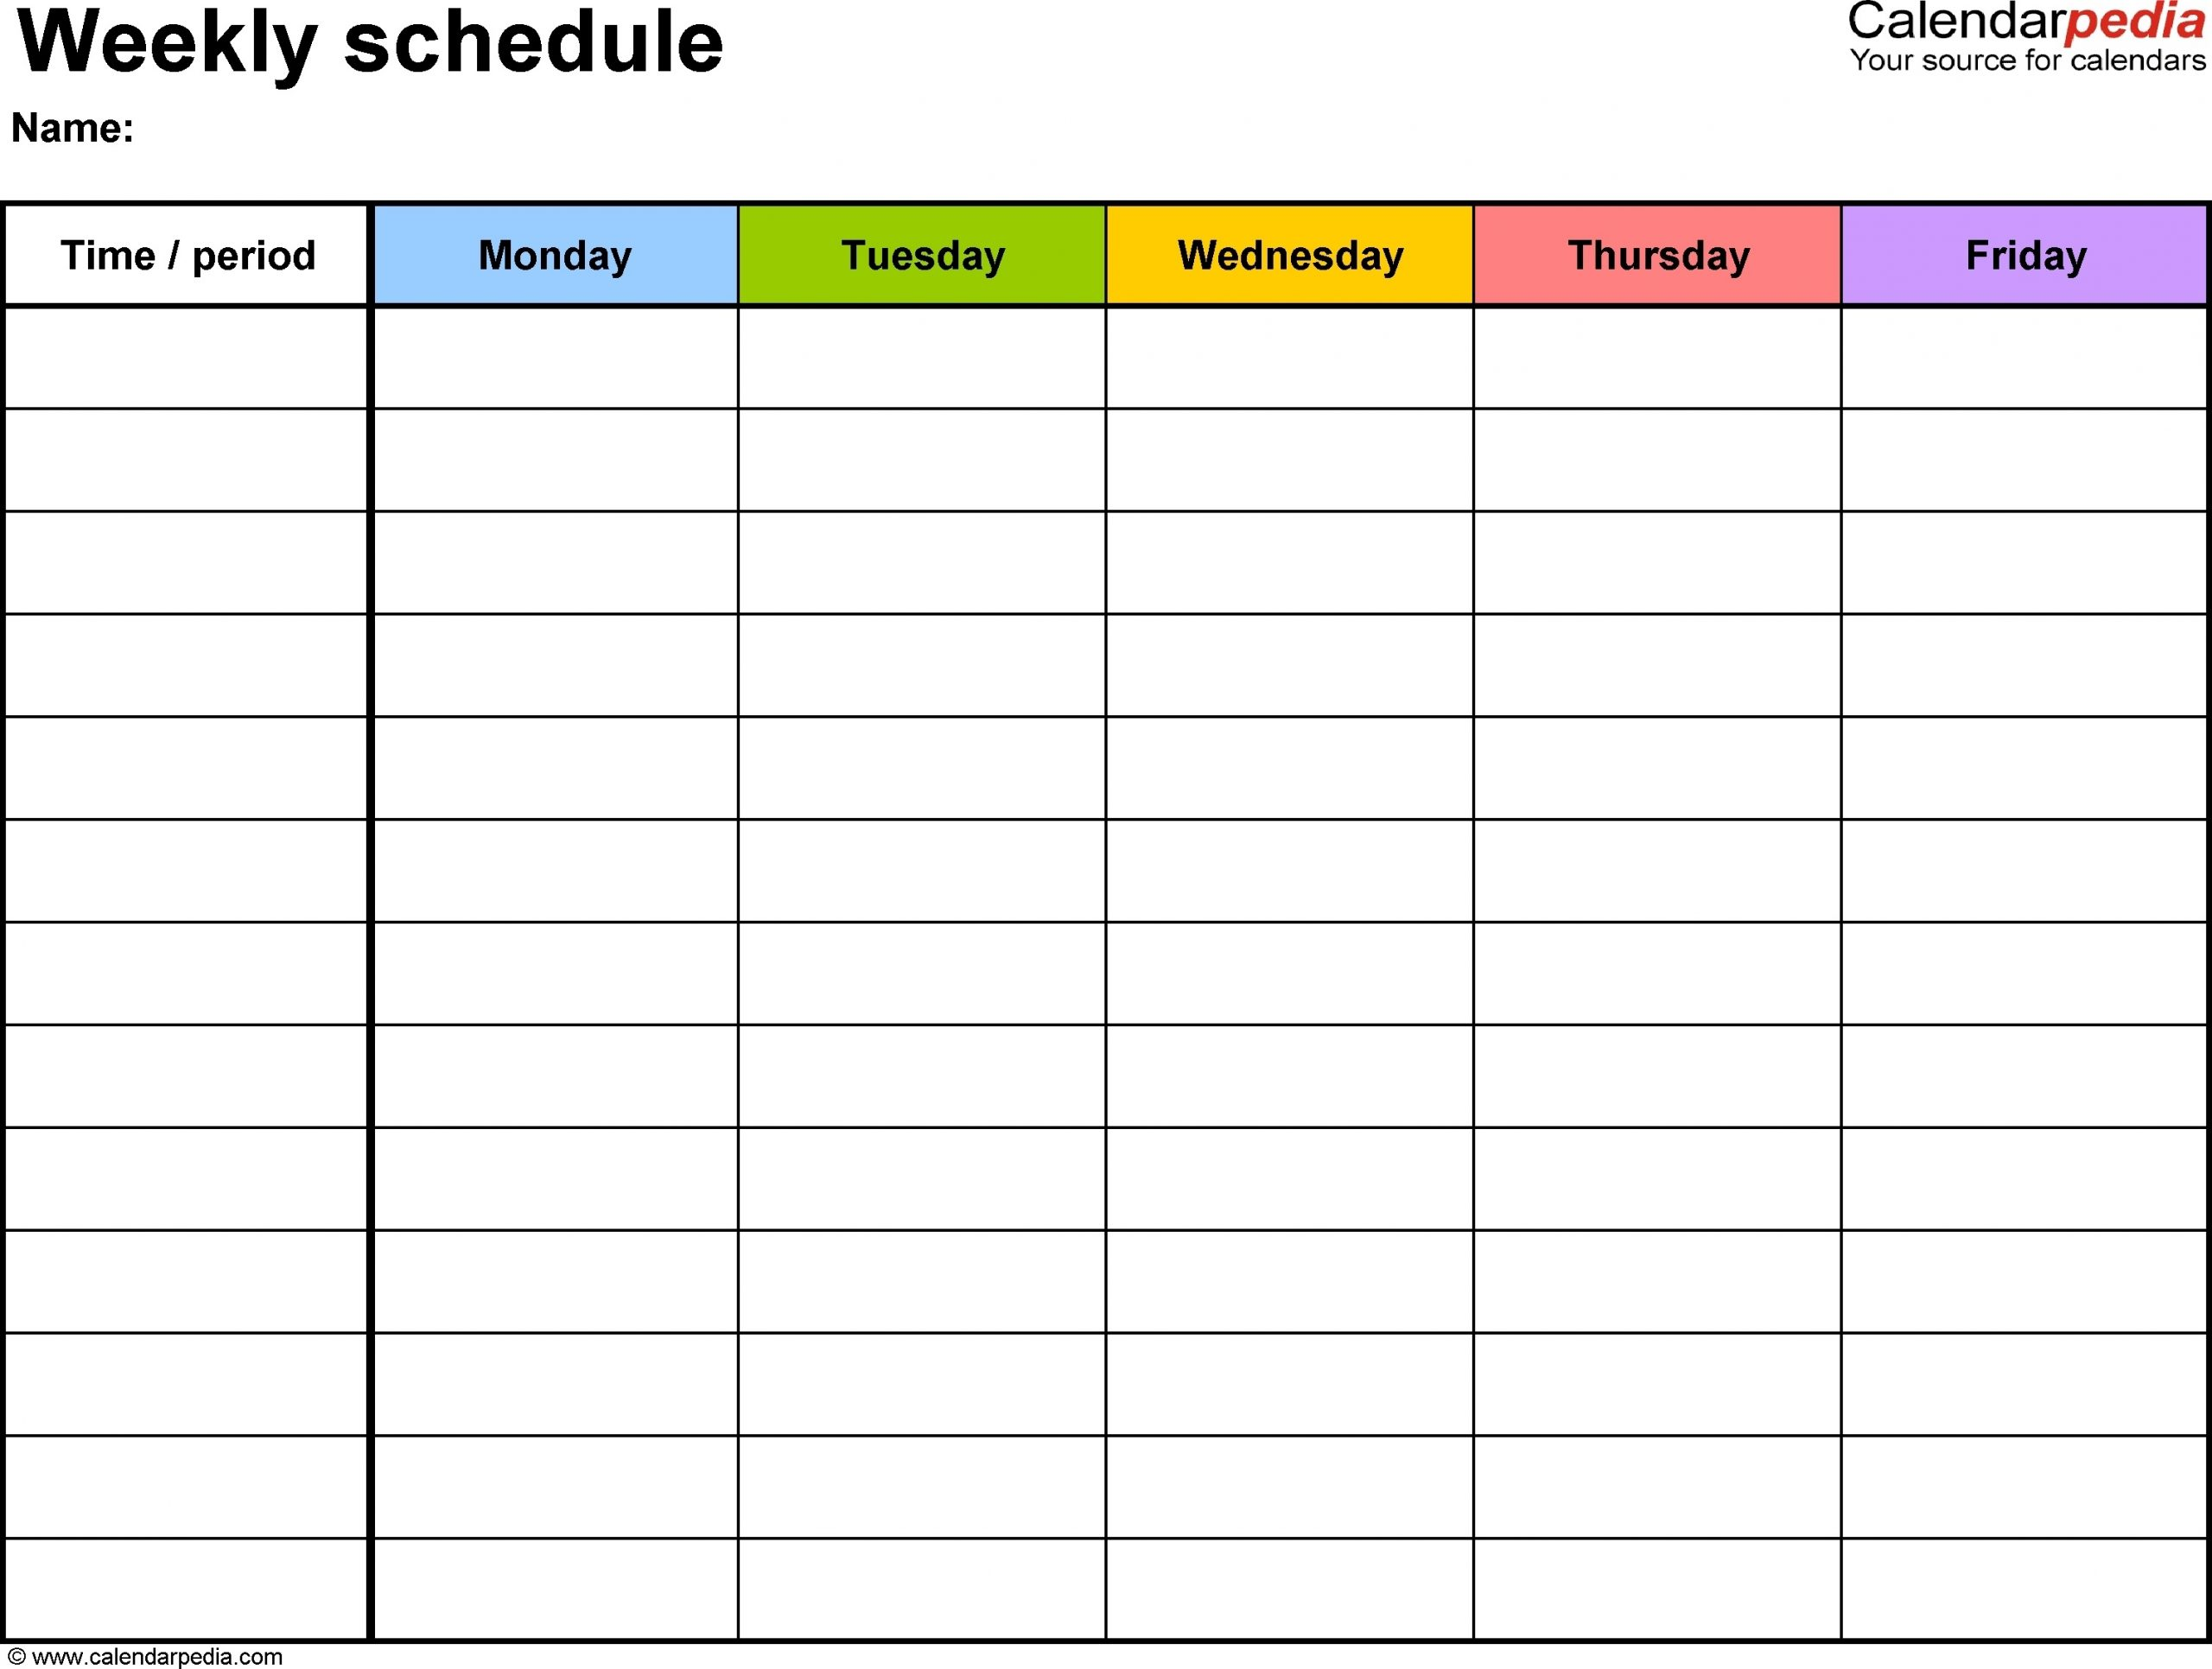 Blank Weekly Schedule Template ~ Addictionary with regard to Editable Calendar With Time Slots